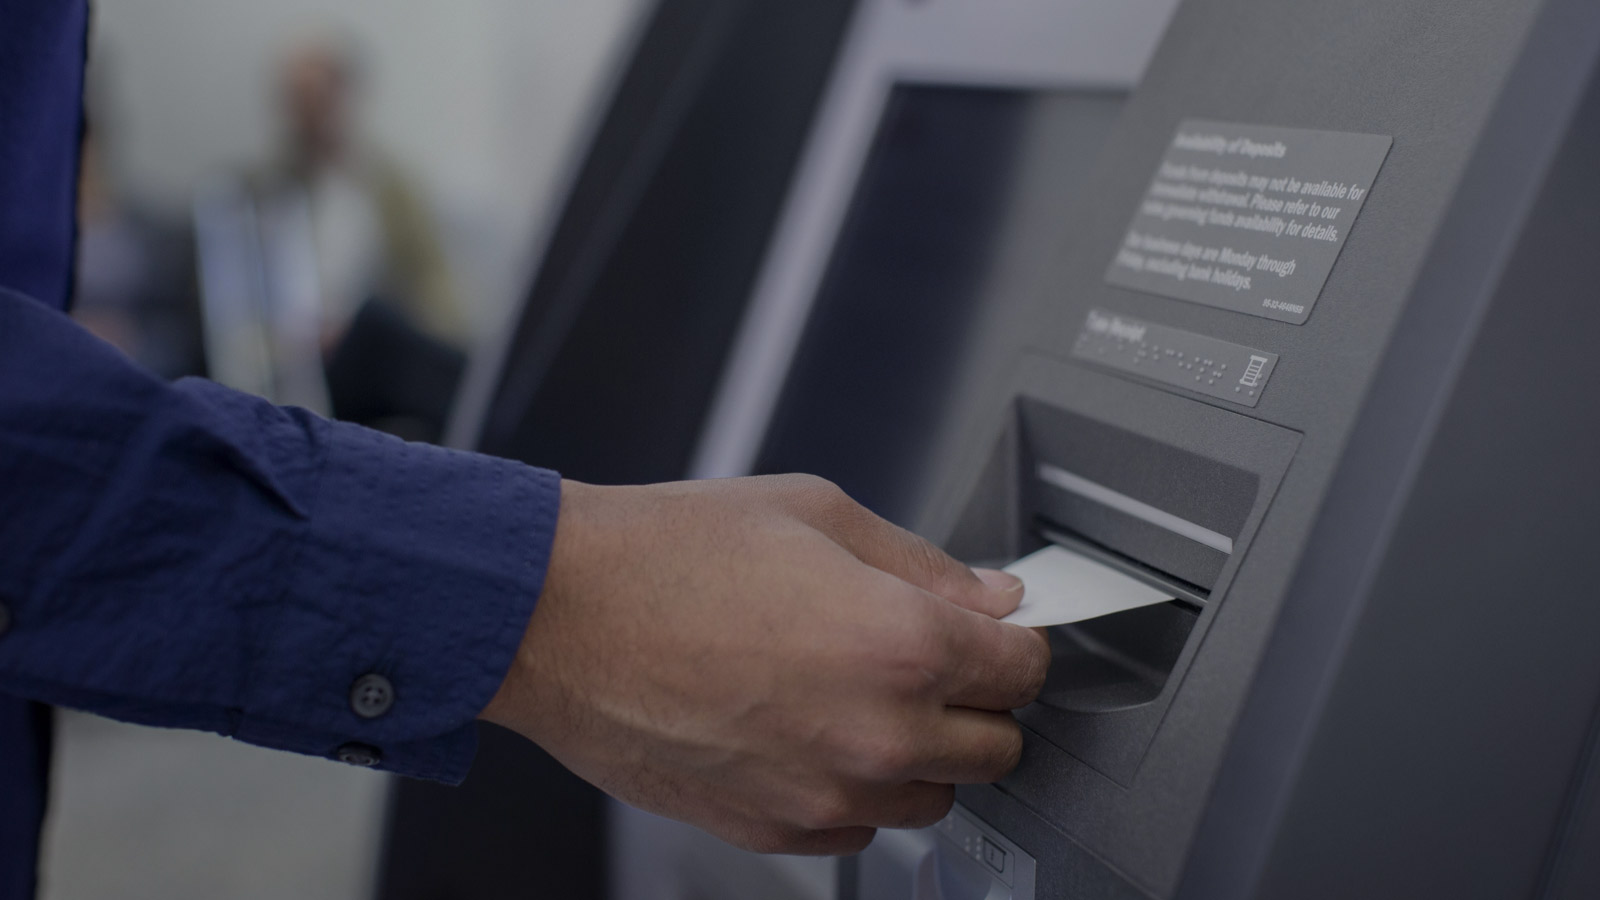 Removing ATM receipt after transaction.